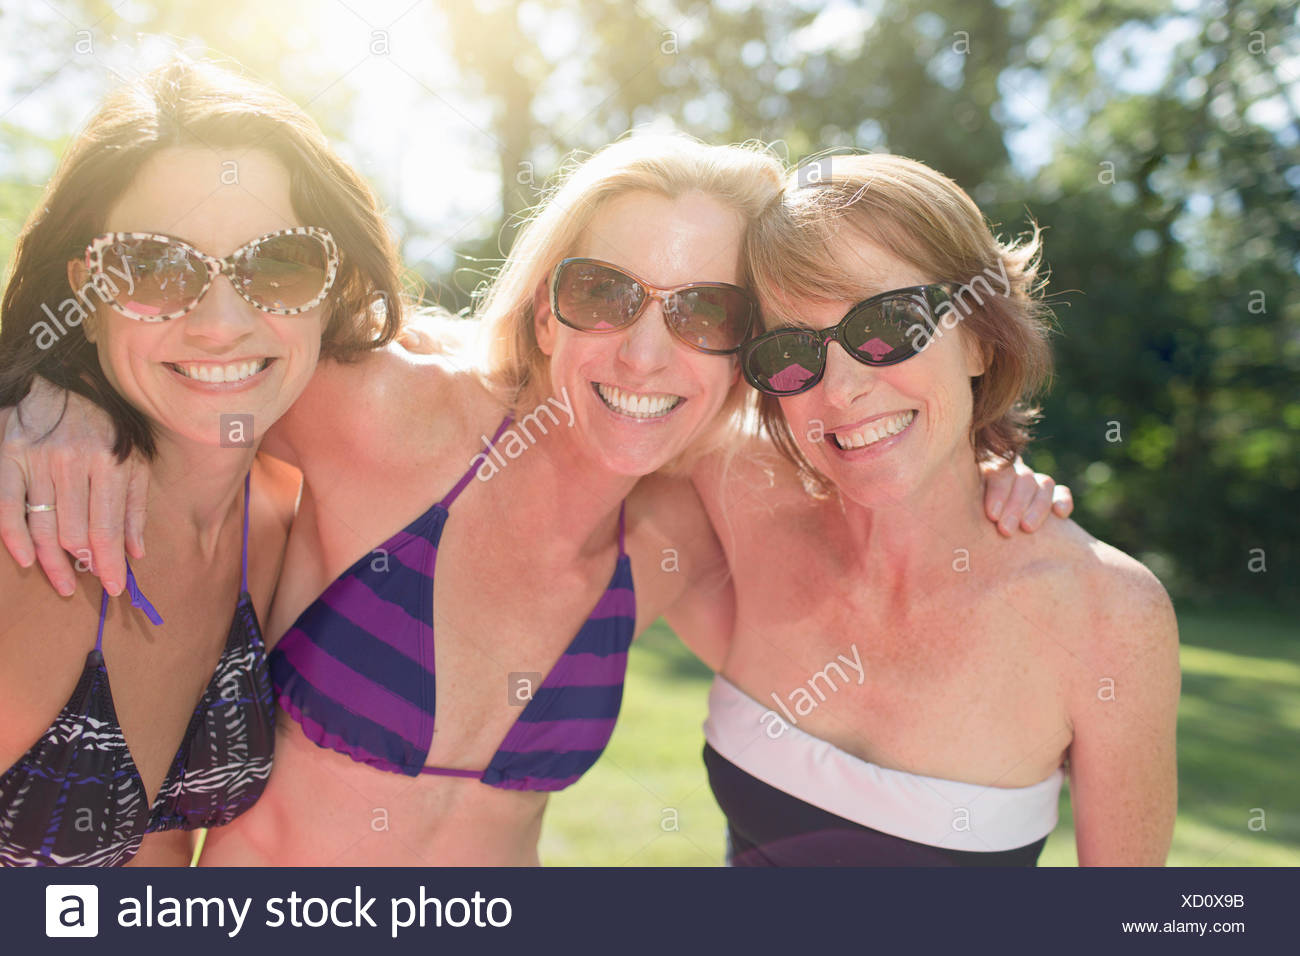 Older Woman In Bikini Stock Photos Amp Older Woman In Bikini Stock Images Alamy